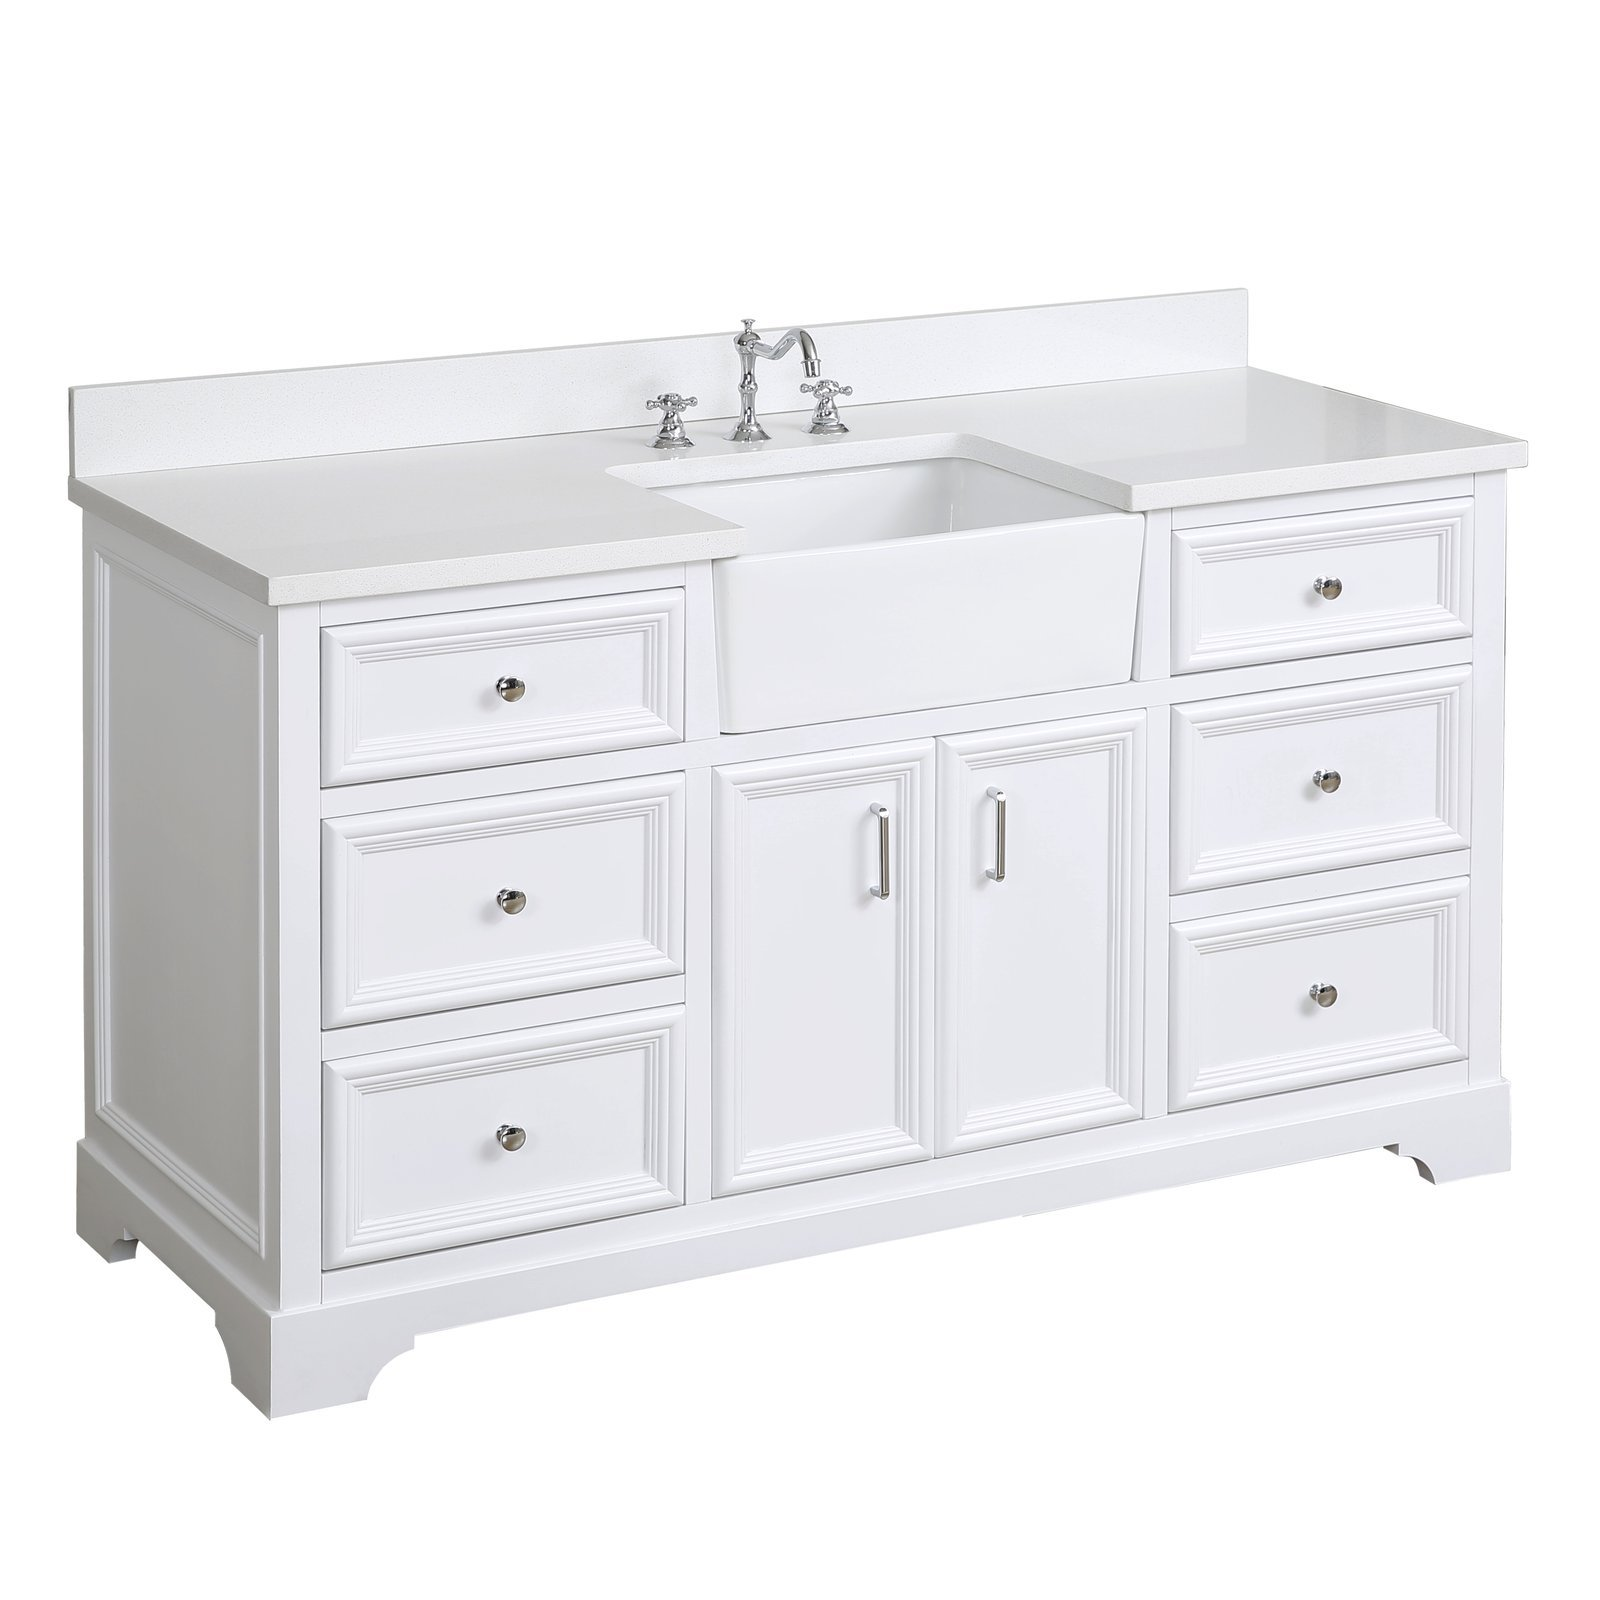 Zelda 60 Single Bathroom Vanity Walmart Com Walmart Com